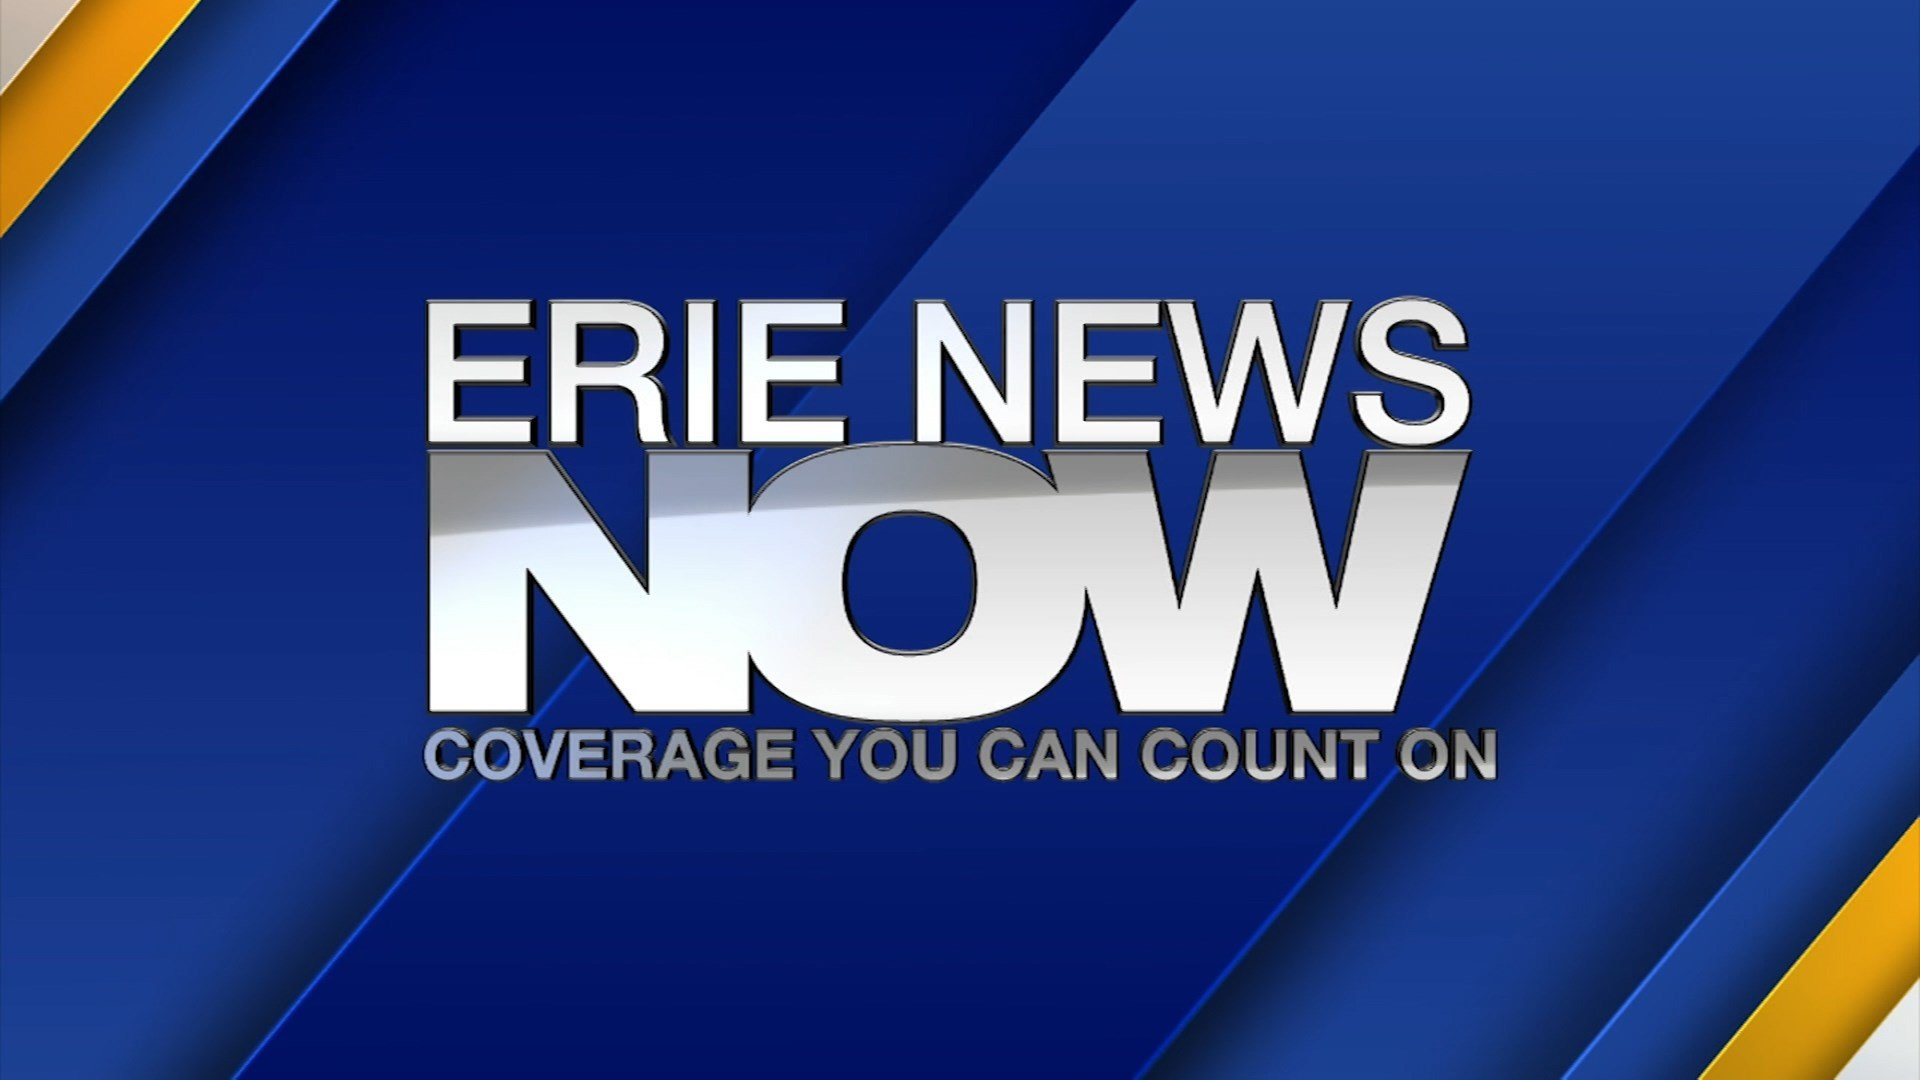 Erie News Now Wicu And Wsee In Erie Pa